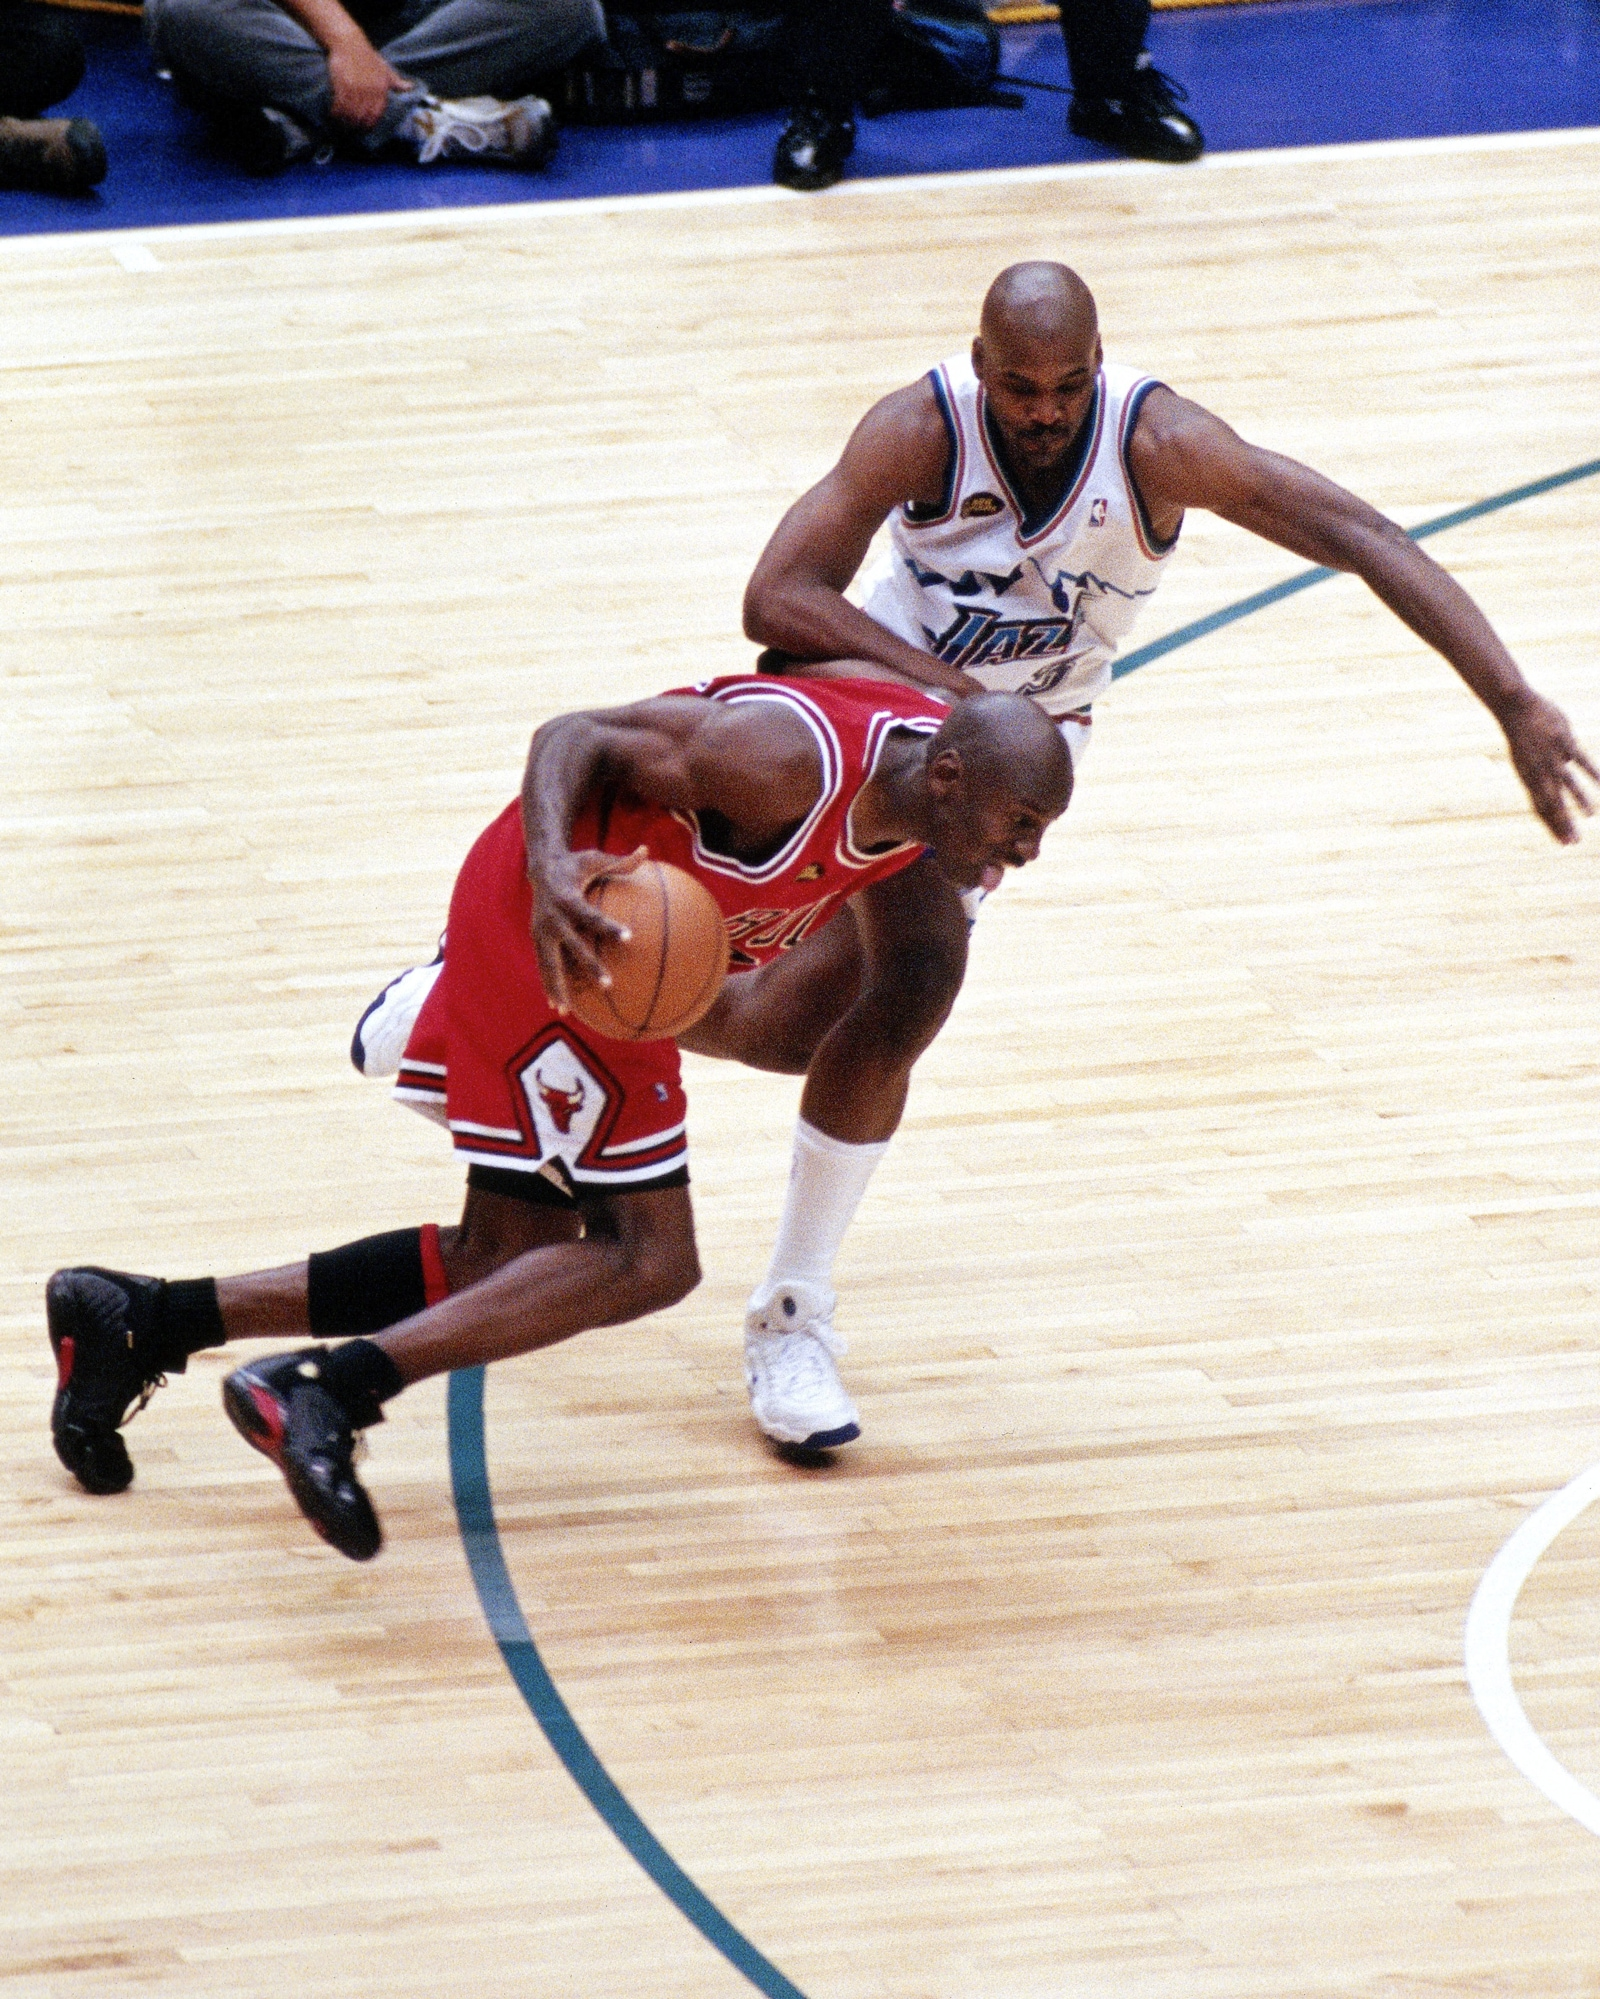 Michael Jordan sets up what is now known as The Last Shot.